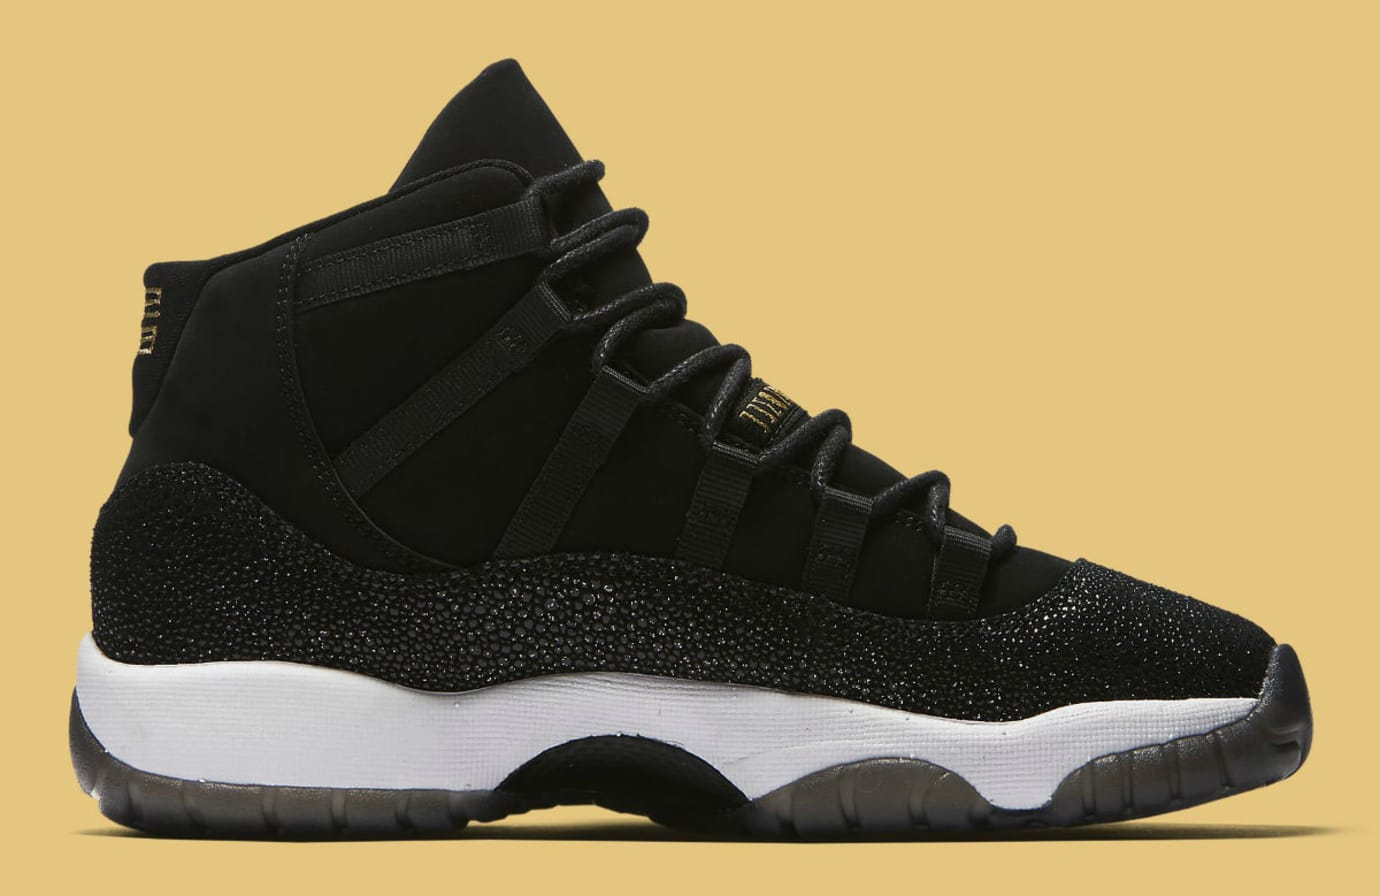 26c513e4 Air Jordan 11 XI Heiress Collection Black/Gold Release Date 852625 ...